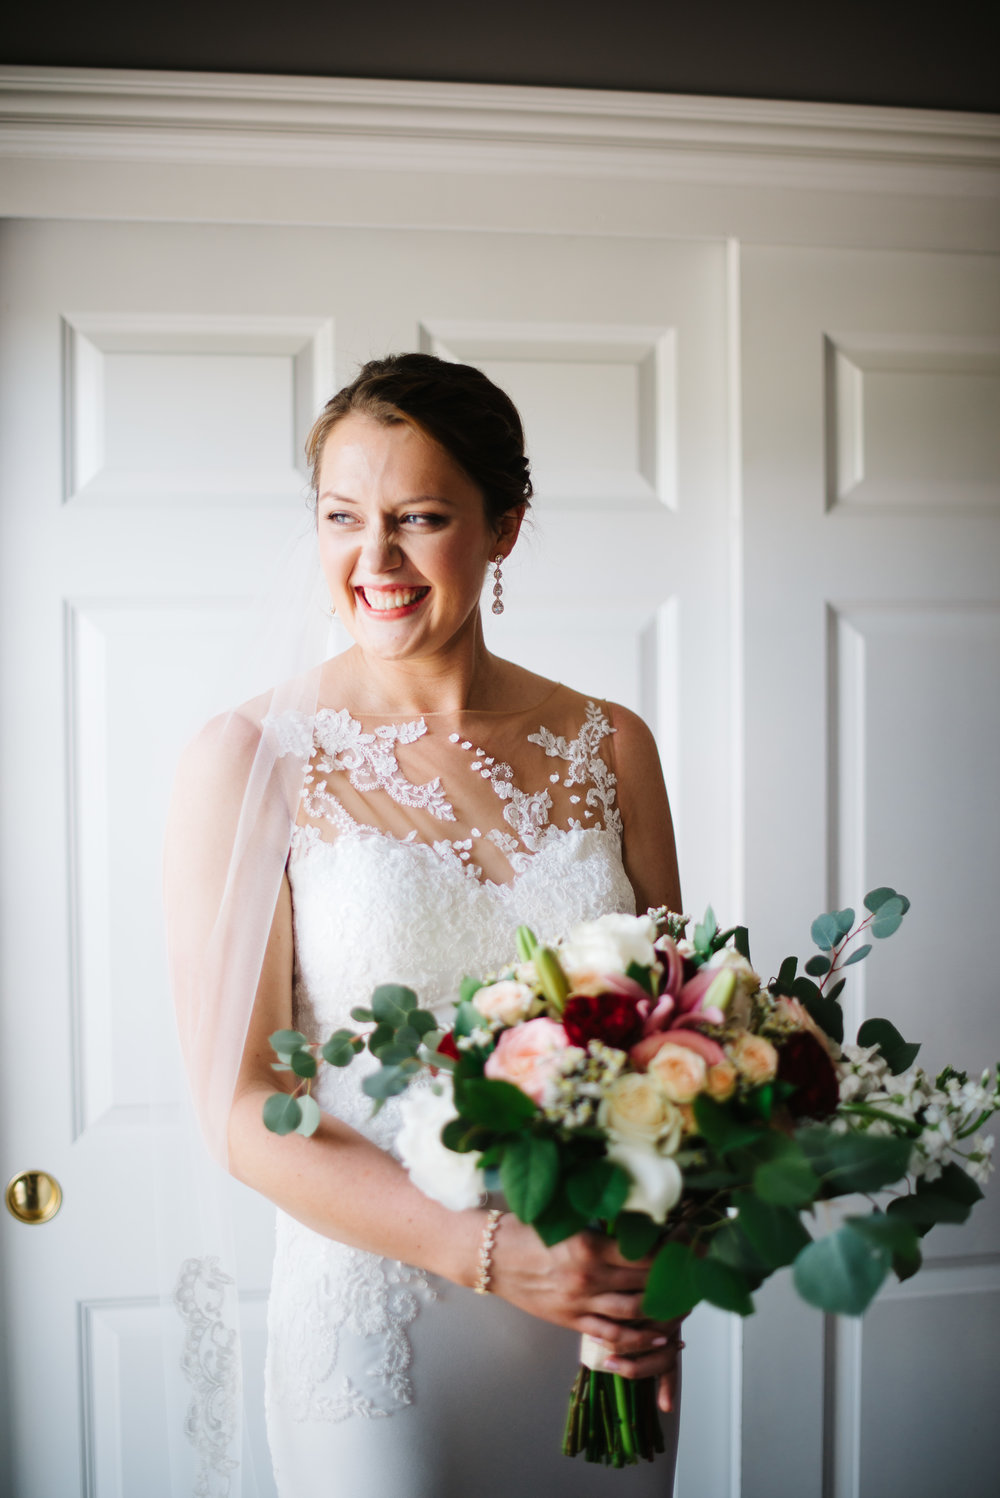 Erika Aileen Photography, Lafayette Indiana Wedding Photographer tips for better getting ready photos on your wedding day